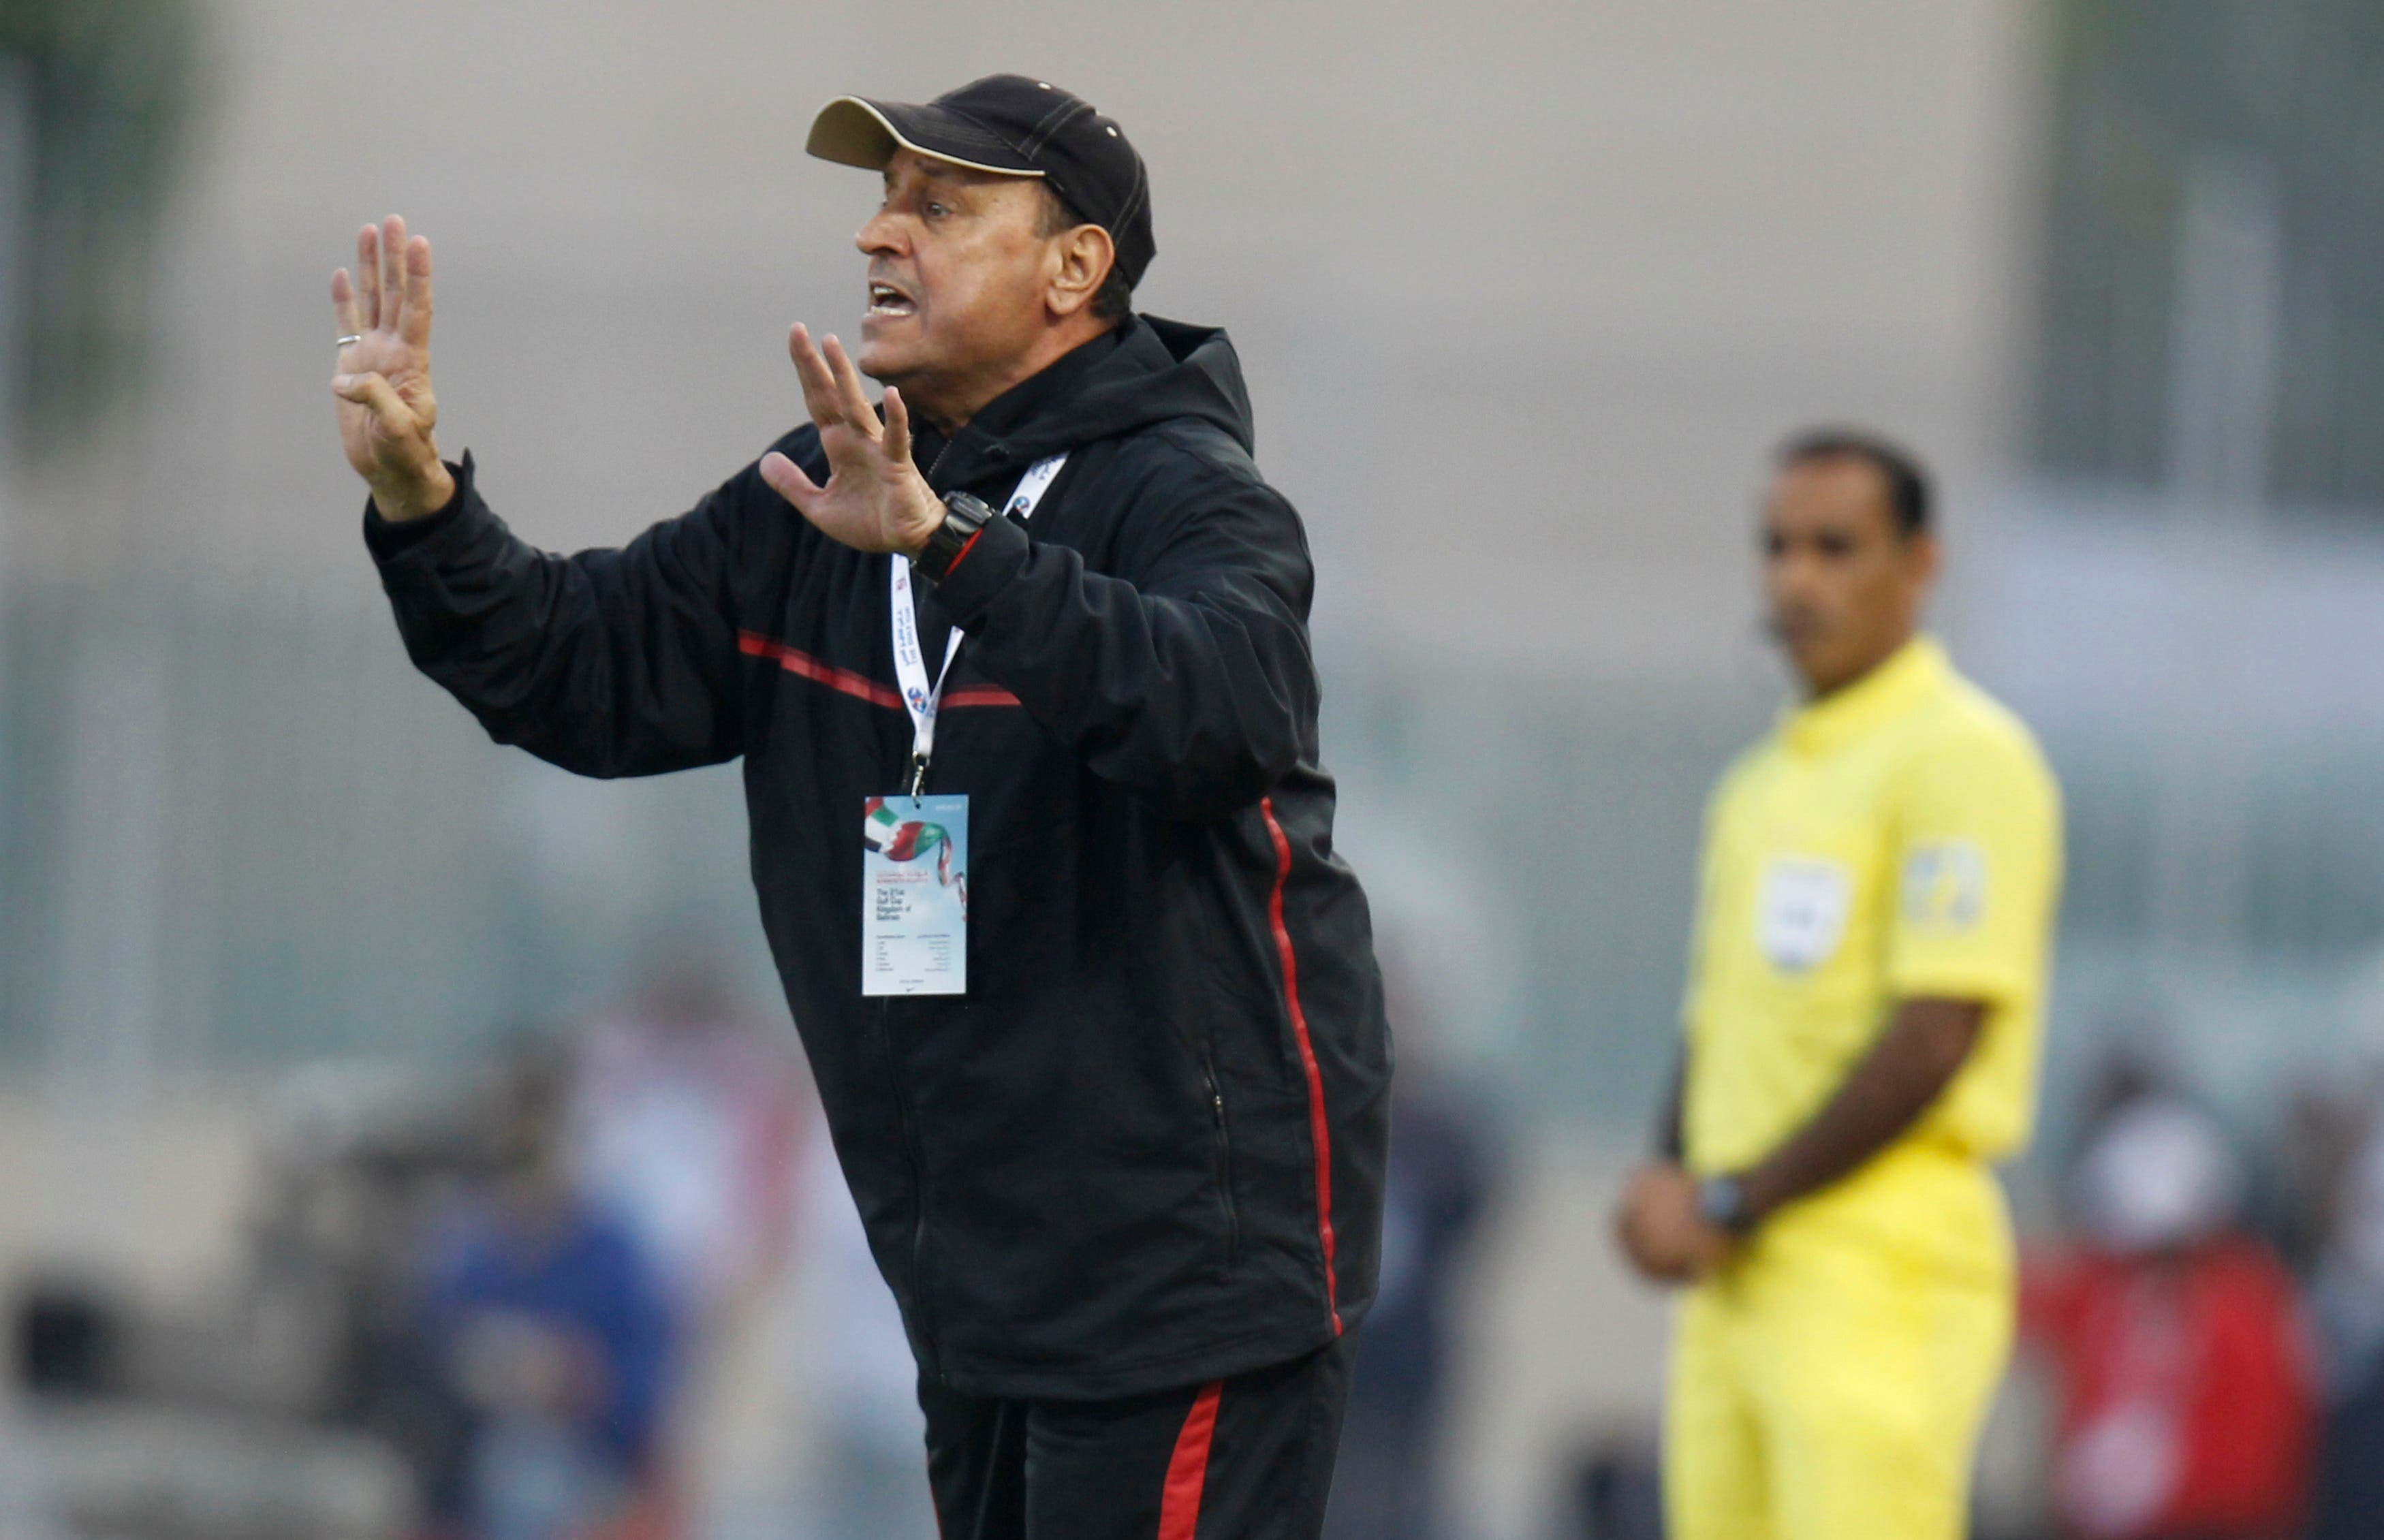 Iraqi's coach Hakim Shaker gestures to his players during their Gulf Cup tournament. (Reuters)